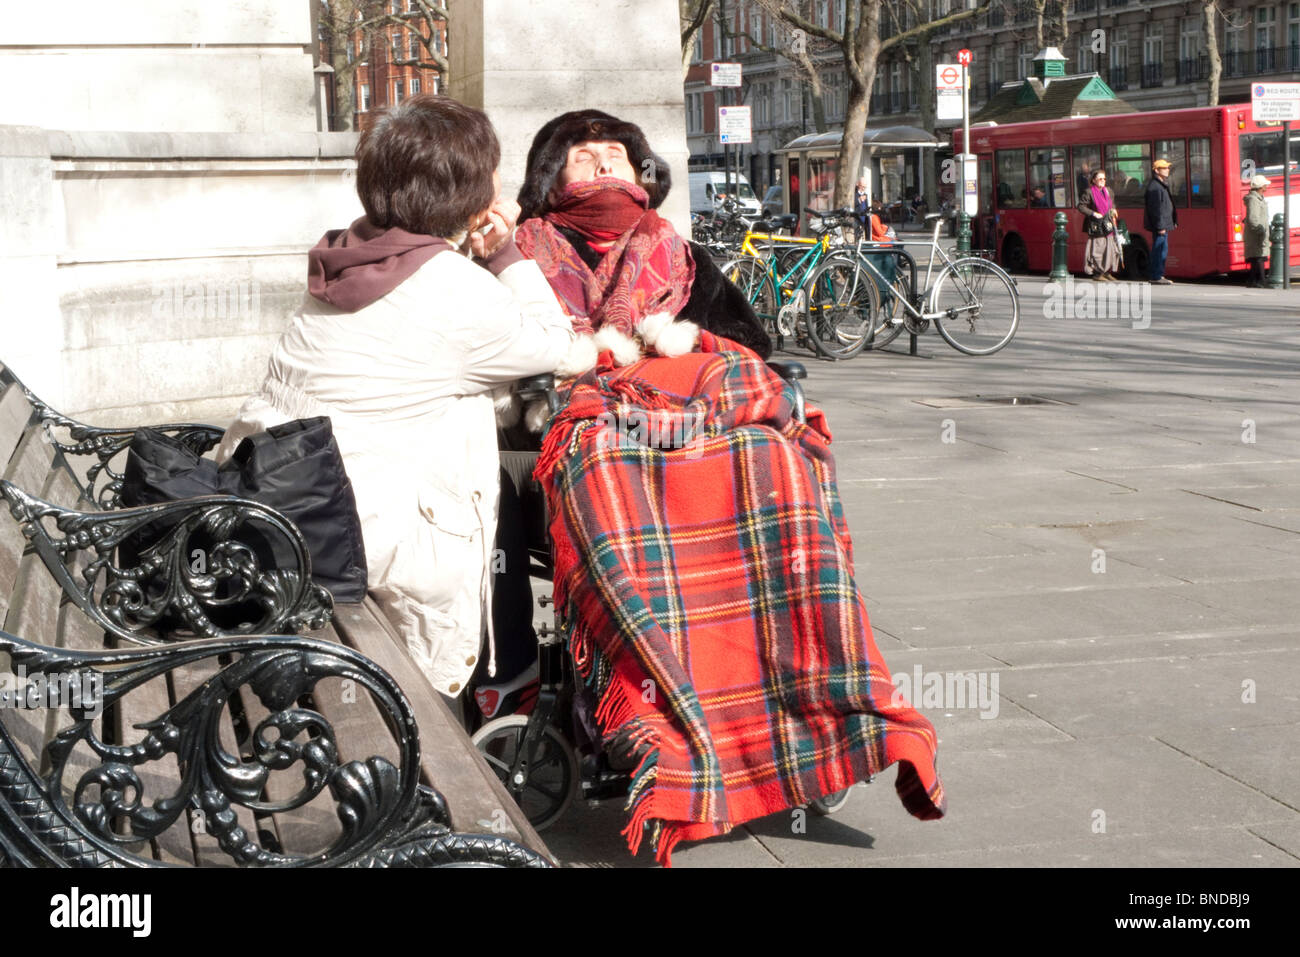 An elderly woman in a tartan blanket and wheelchair accompanied by her minder outside the V & A Museum London - Stock Image